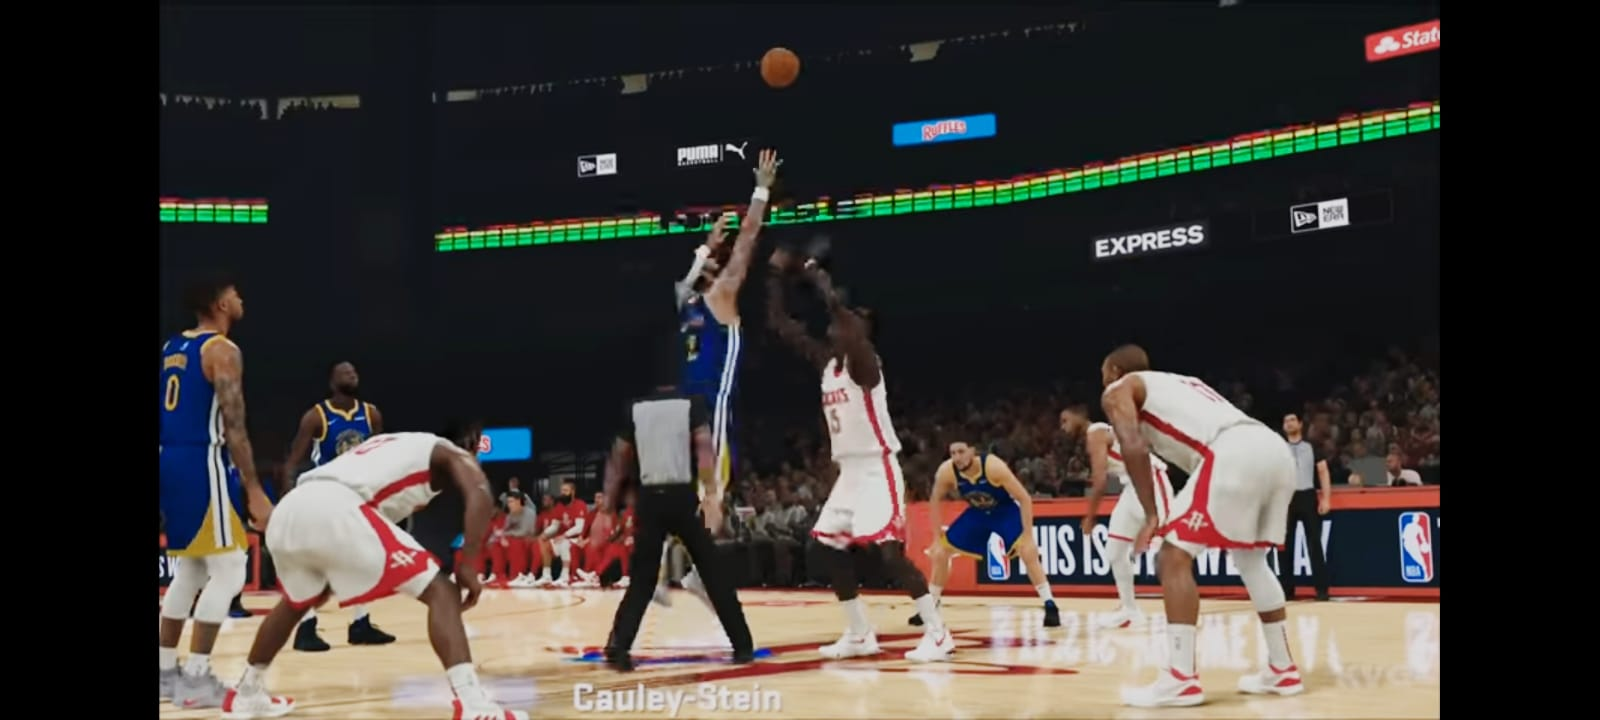 NBA 2k20 APK v98.0.2 Free Download For Android Latest 2021 3